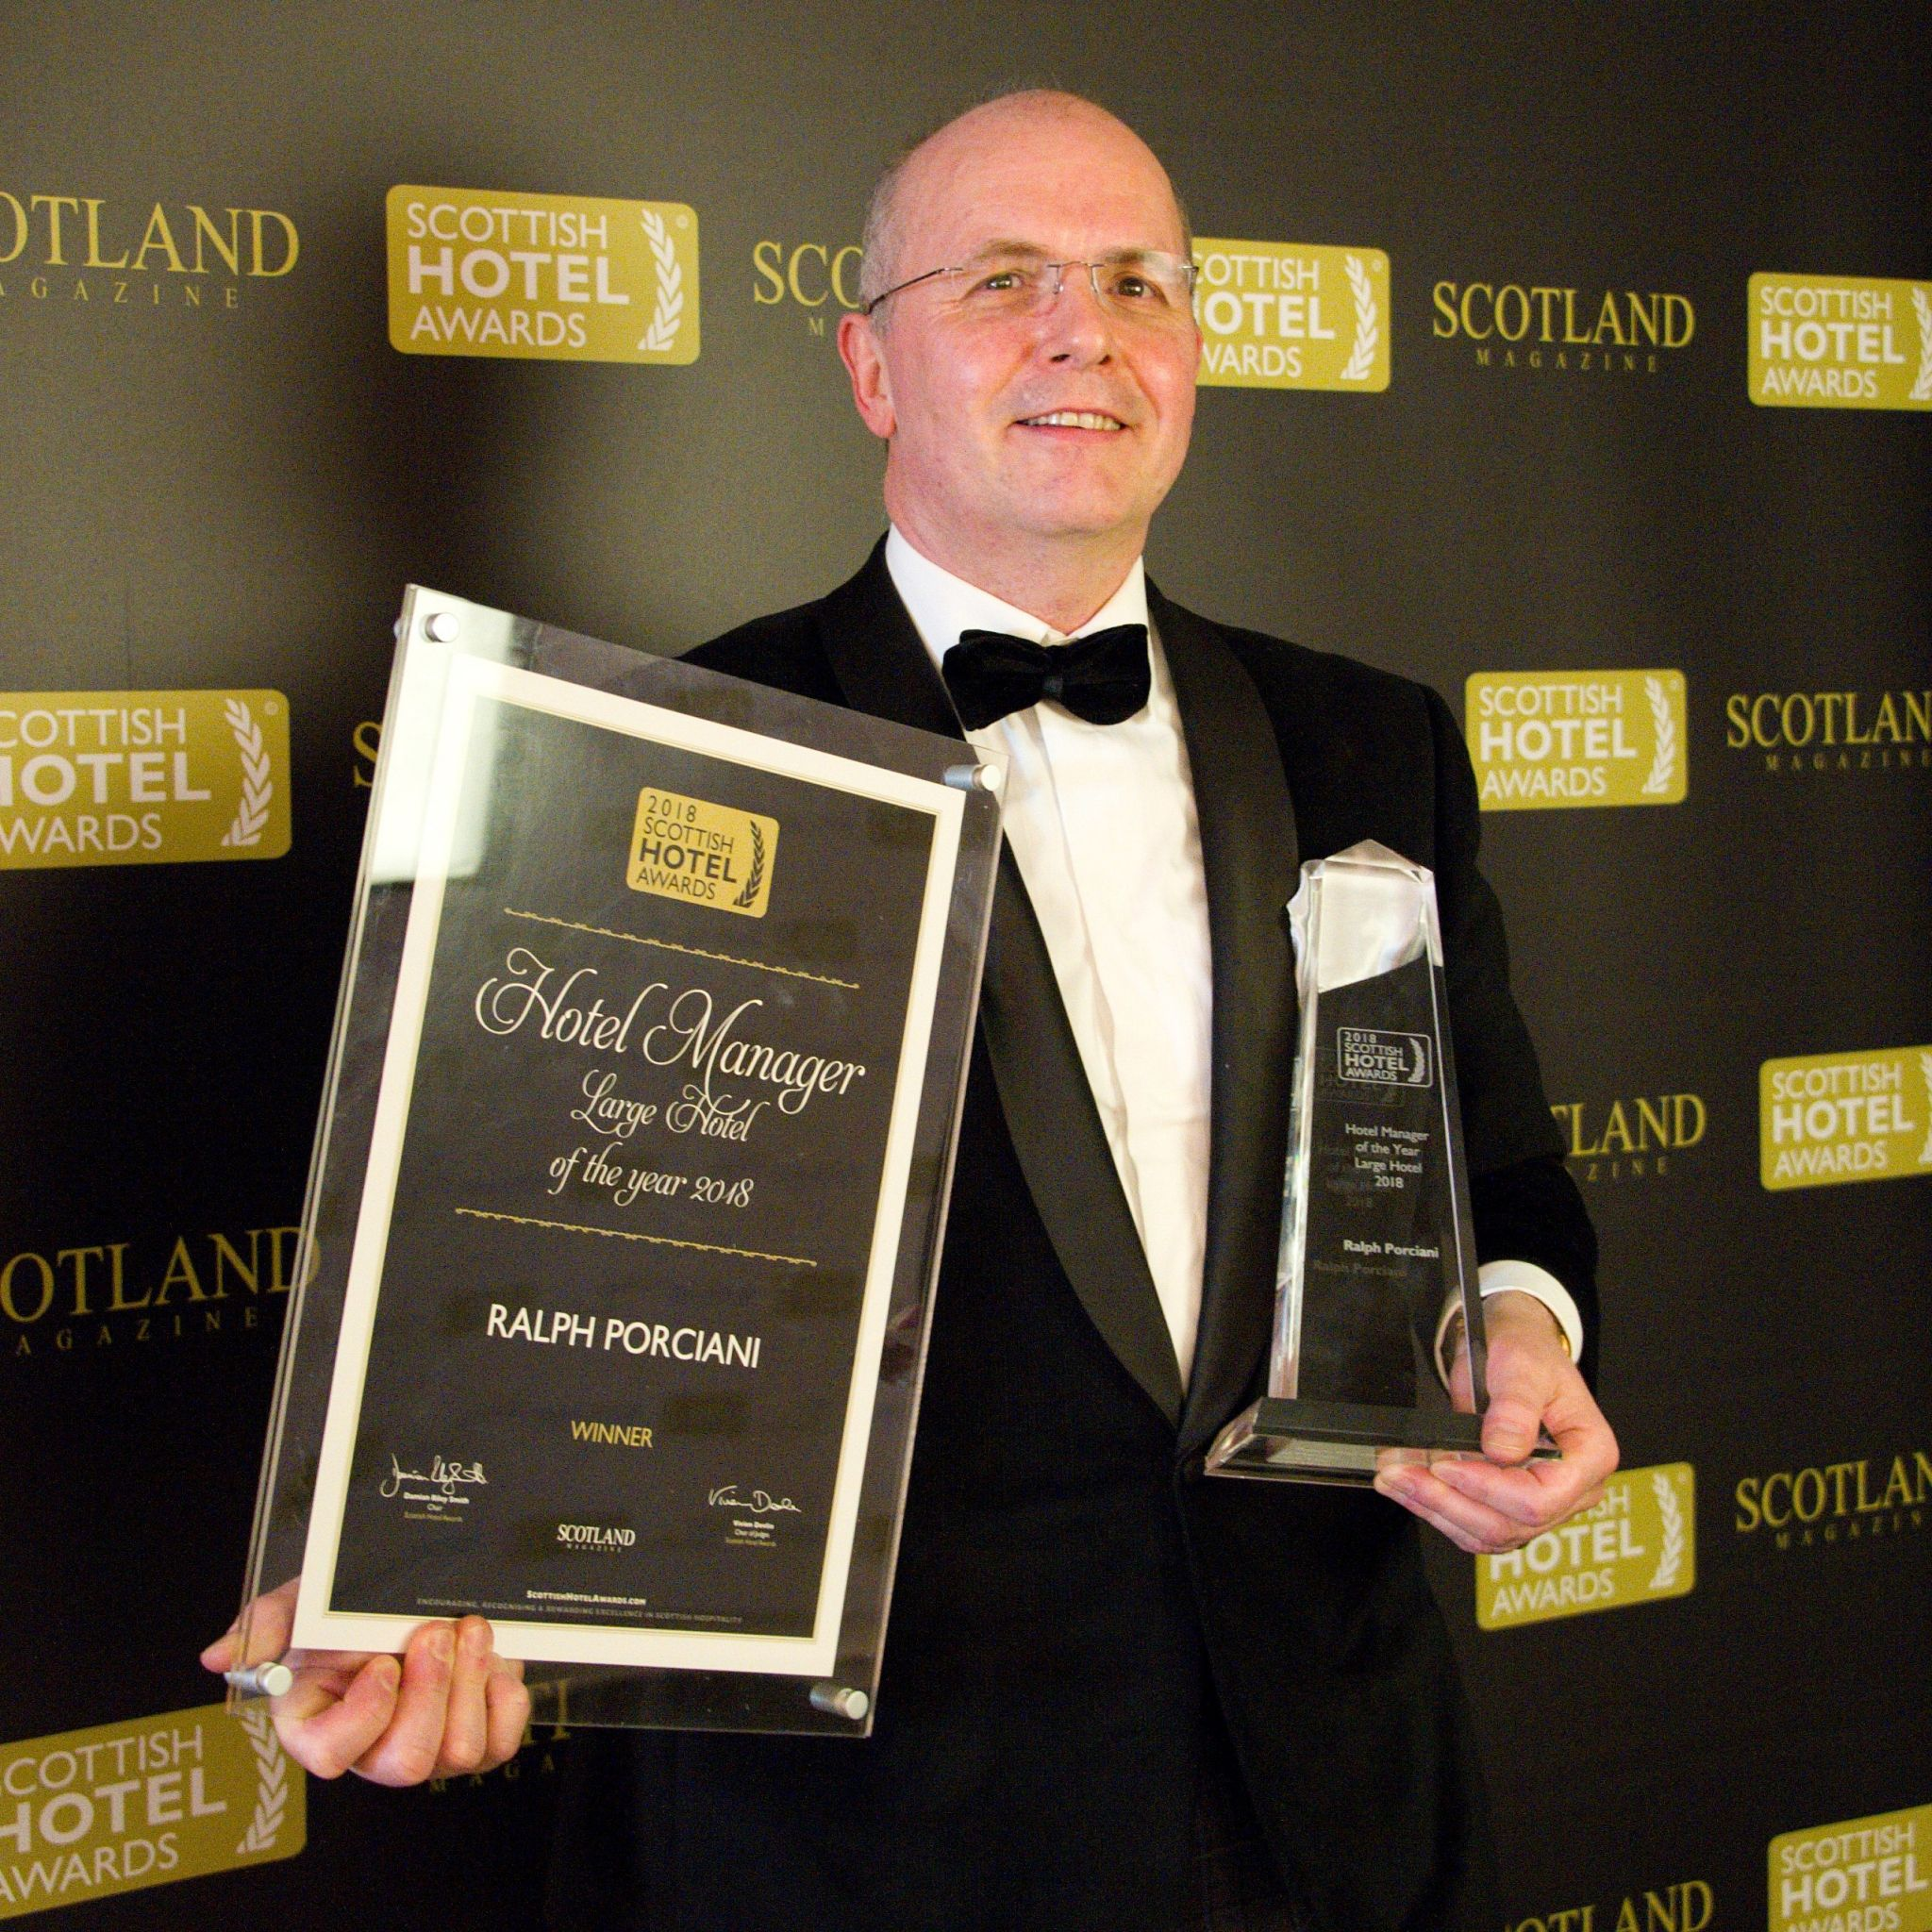 Ralph Pociani Trump Turnberry Hotel Manager of the Year